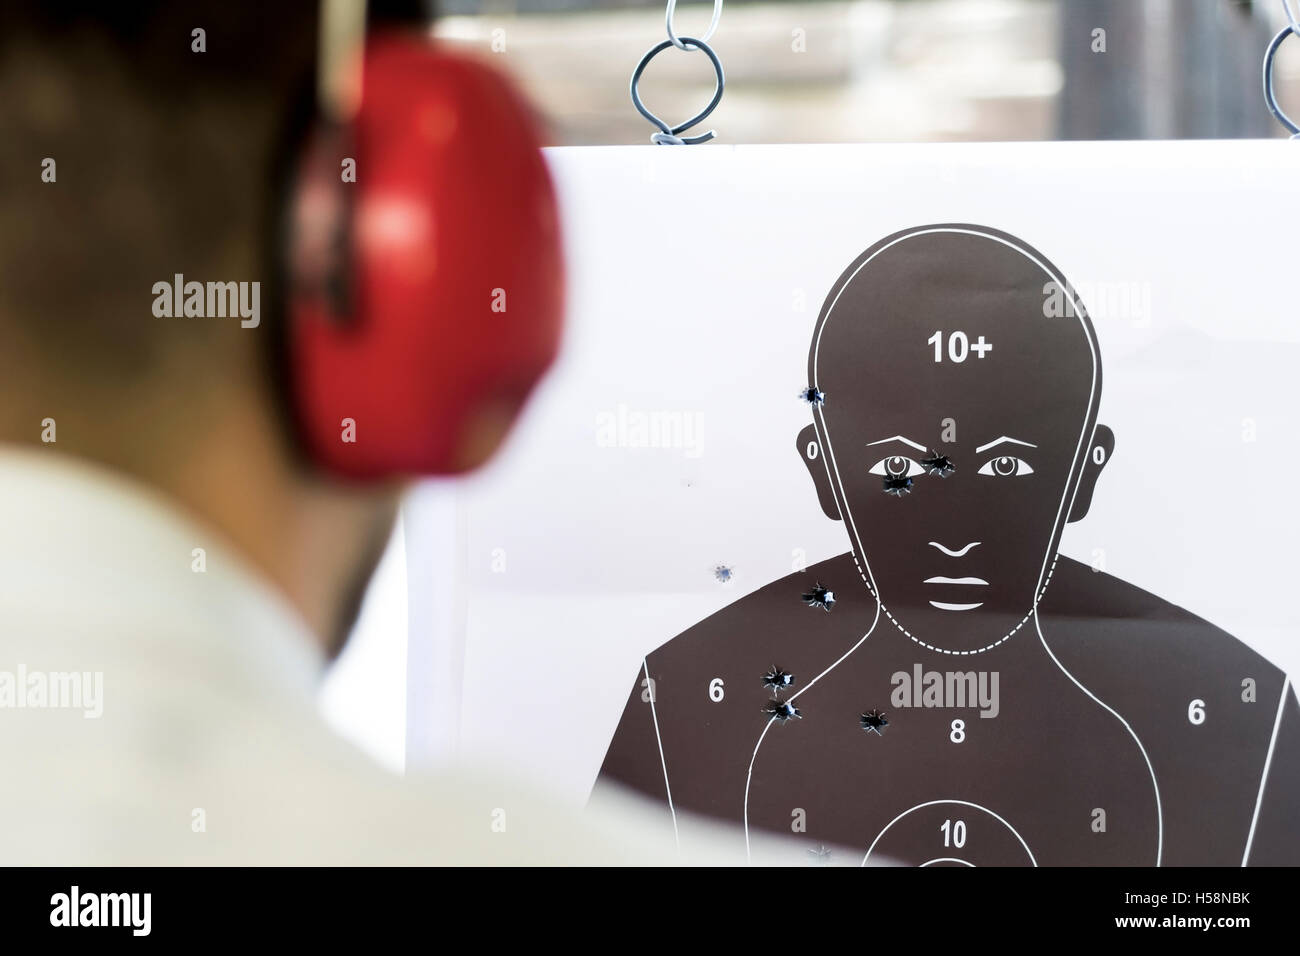 Shooting Target Black Human Silhouette with Holes - Stock Image